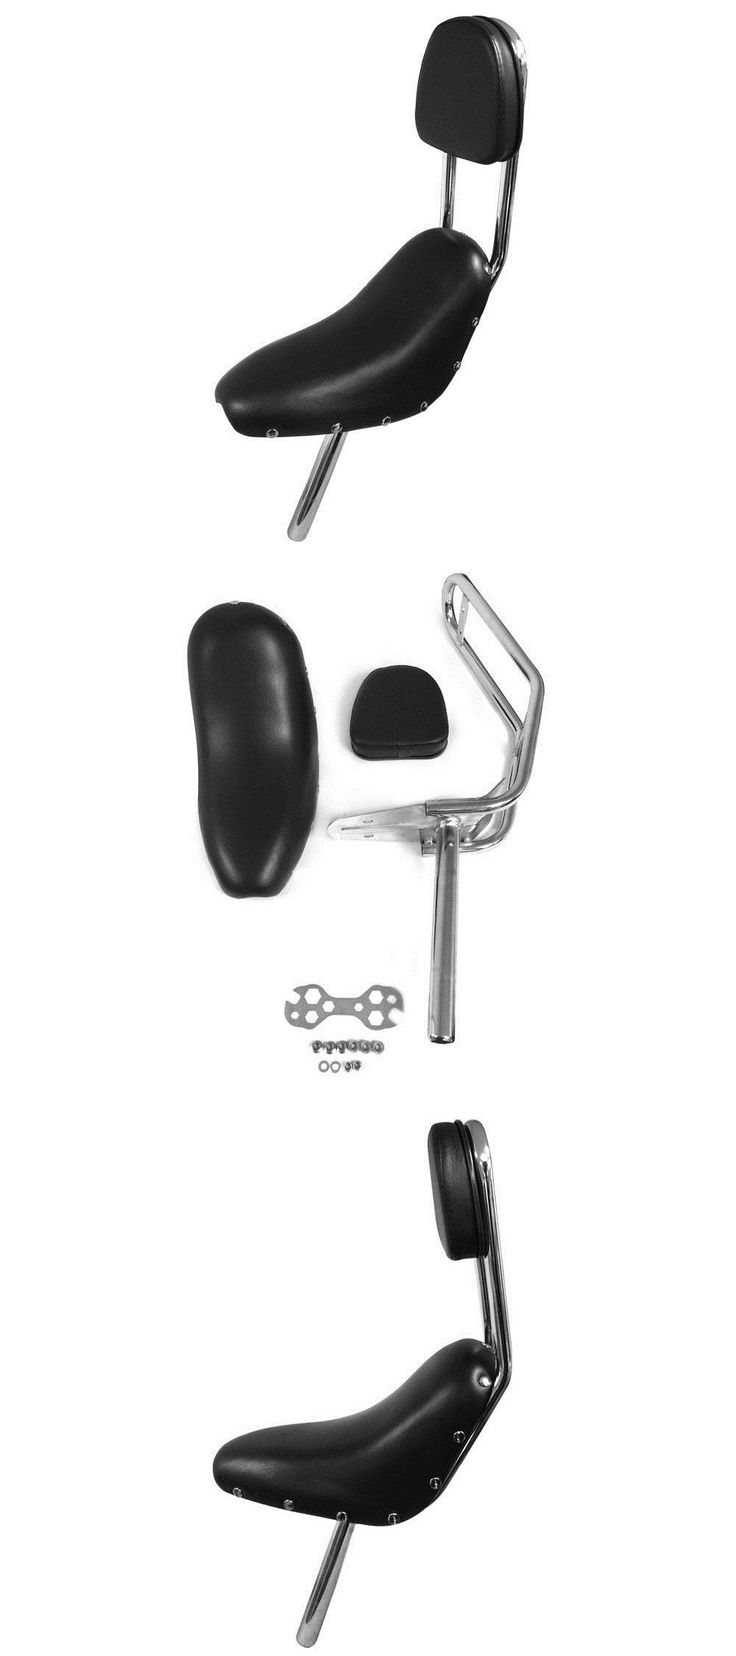 Other Bike Components and Parts 57267: Chopper Seat For A 48Cc/ 66Cc Motorized Cruiser Chopper Bicycle -> BUY IT NOW ONLY: $58.99 on eBay!